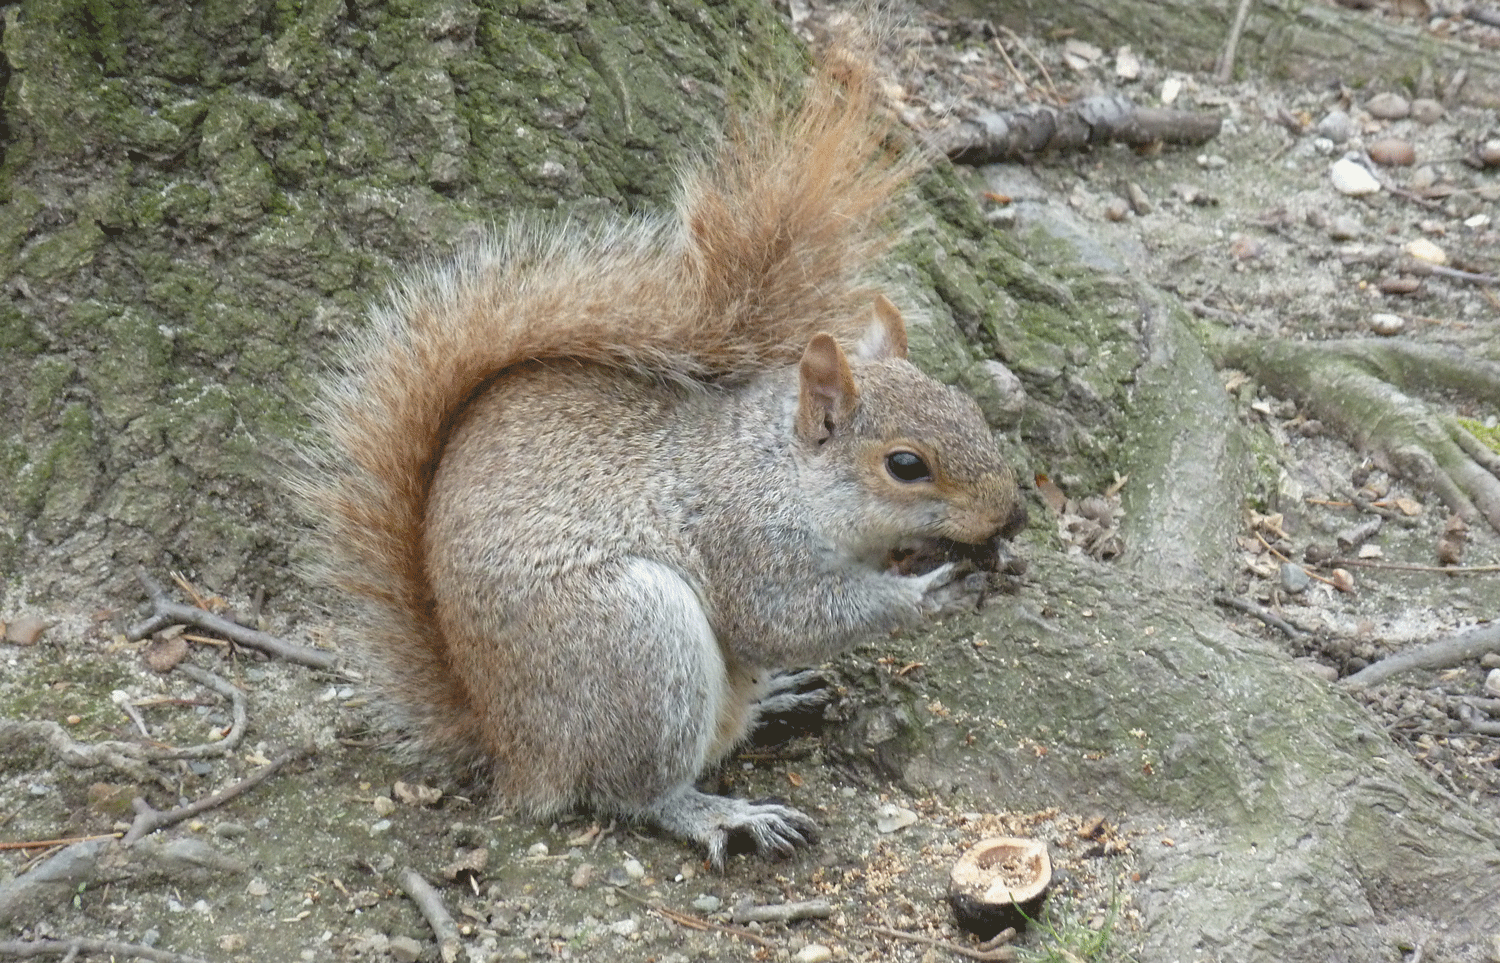 Photograph of a grey squirrel eating a nut.